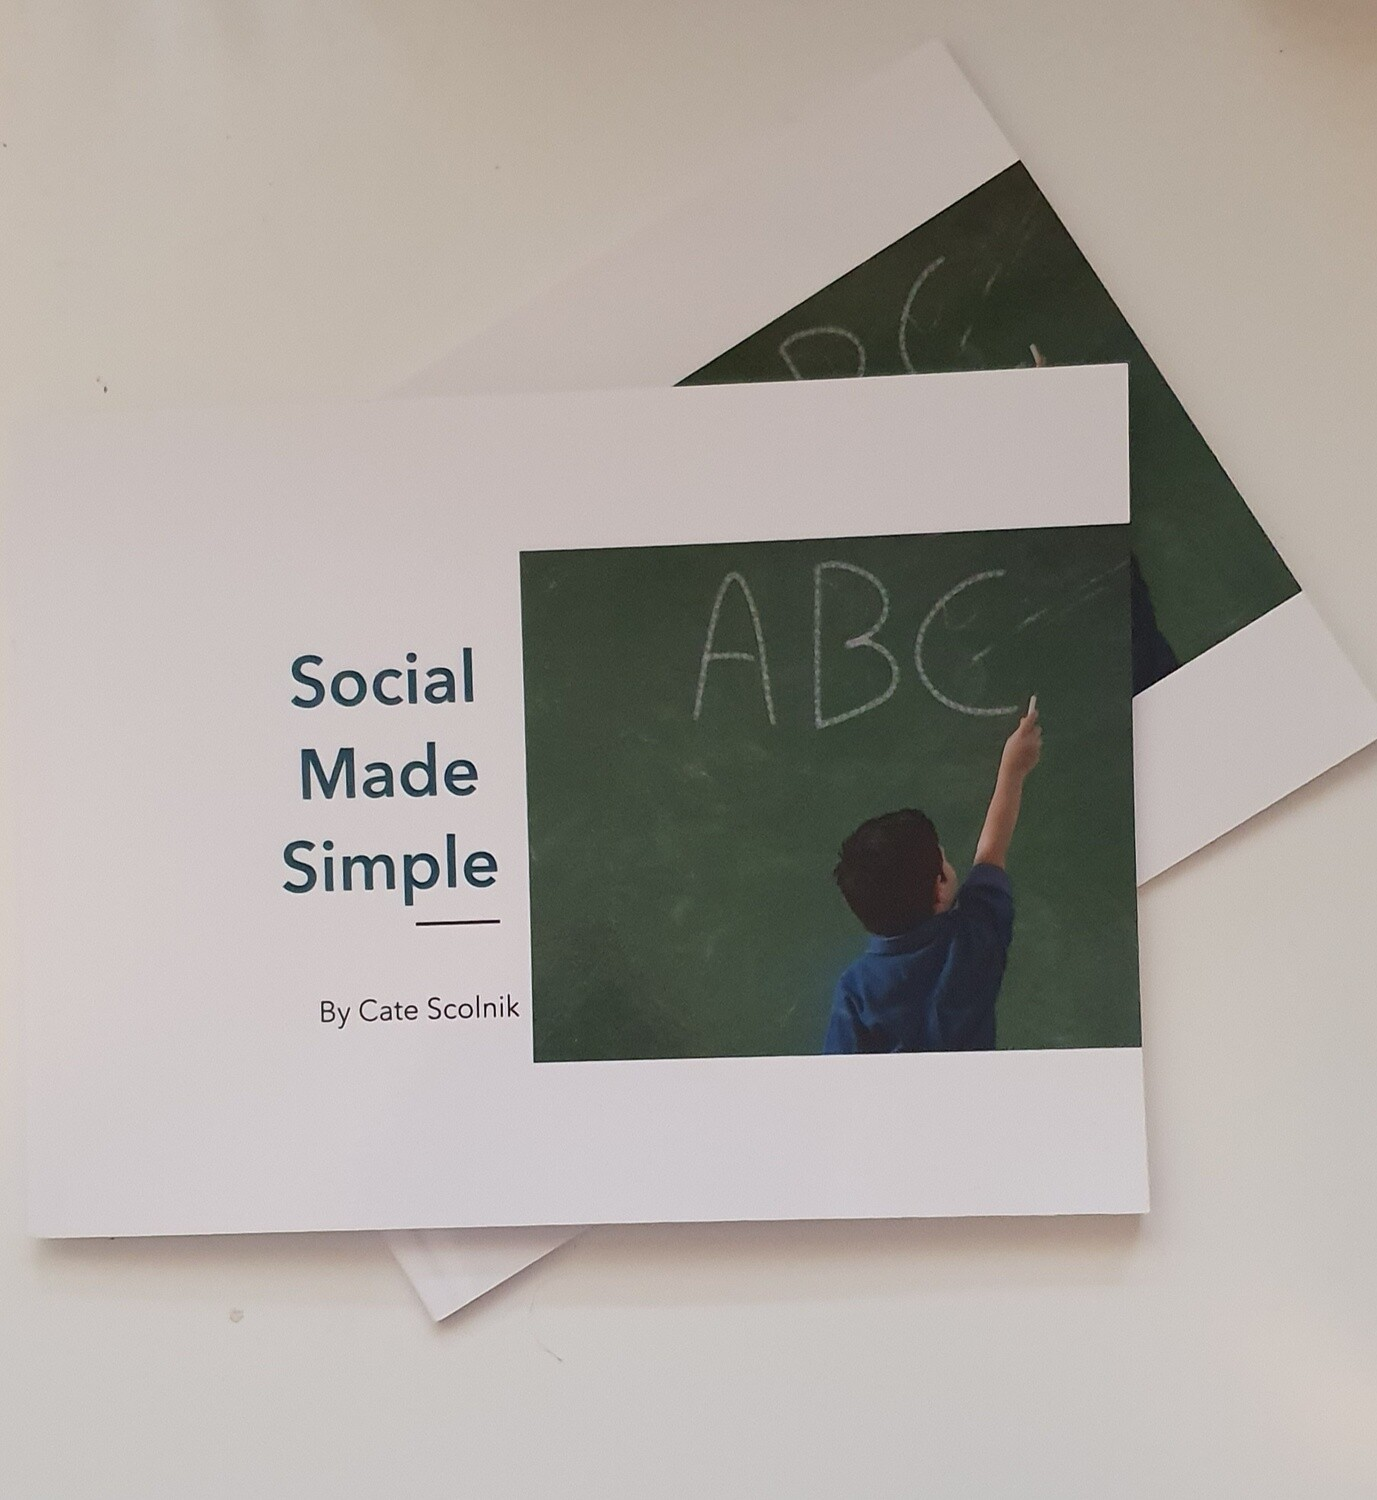 Social Made Simple